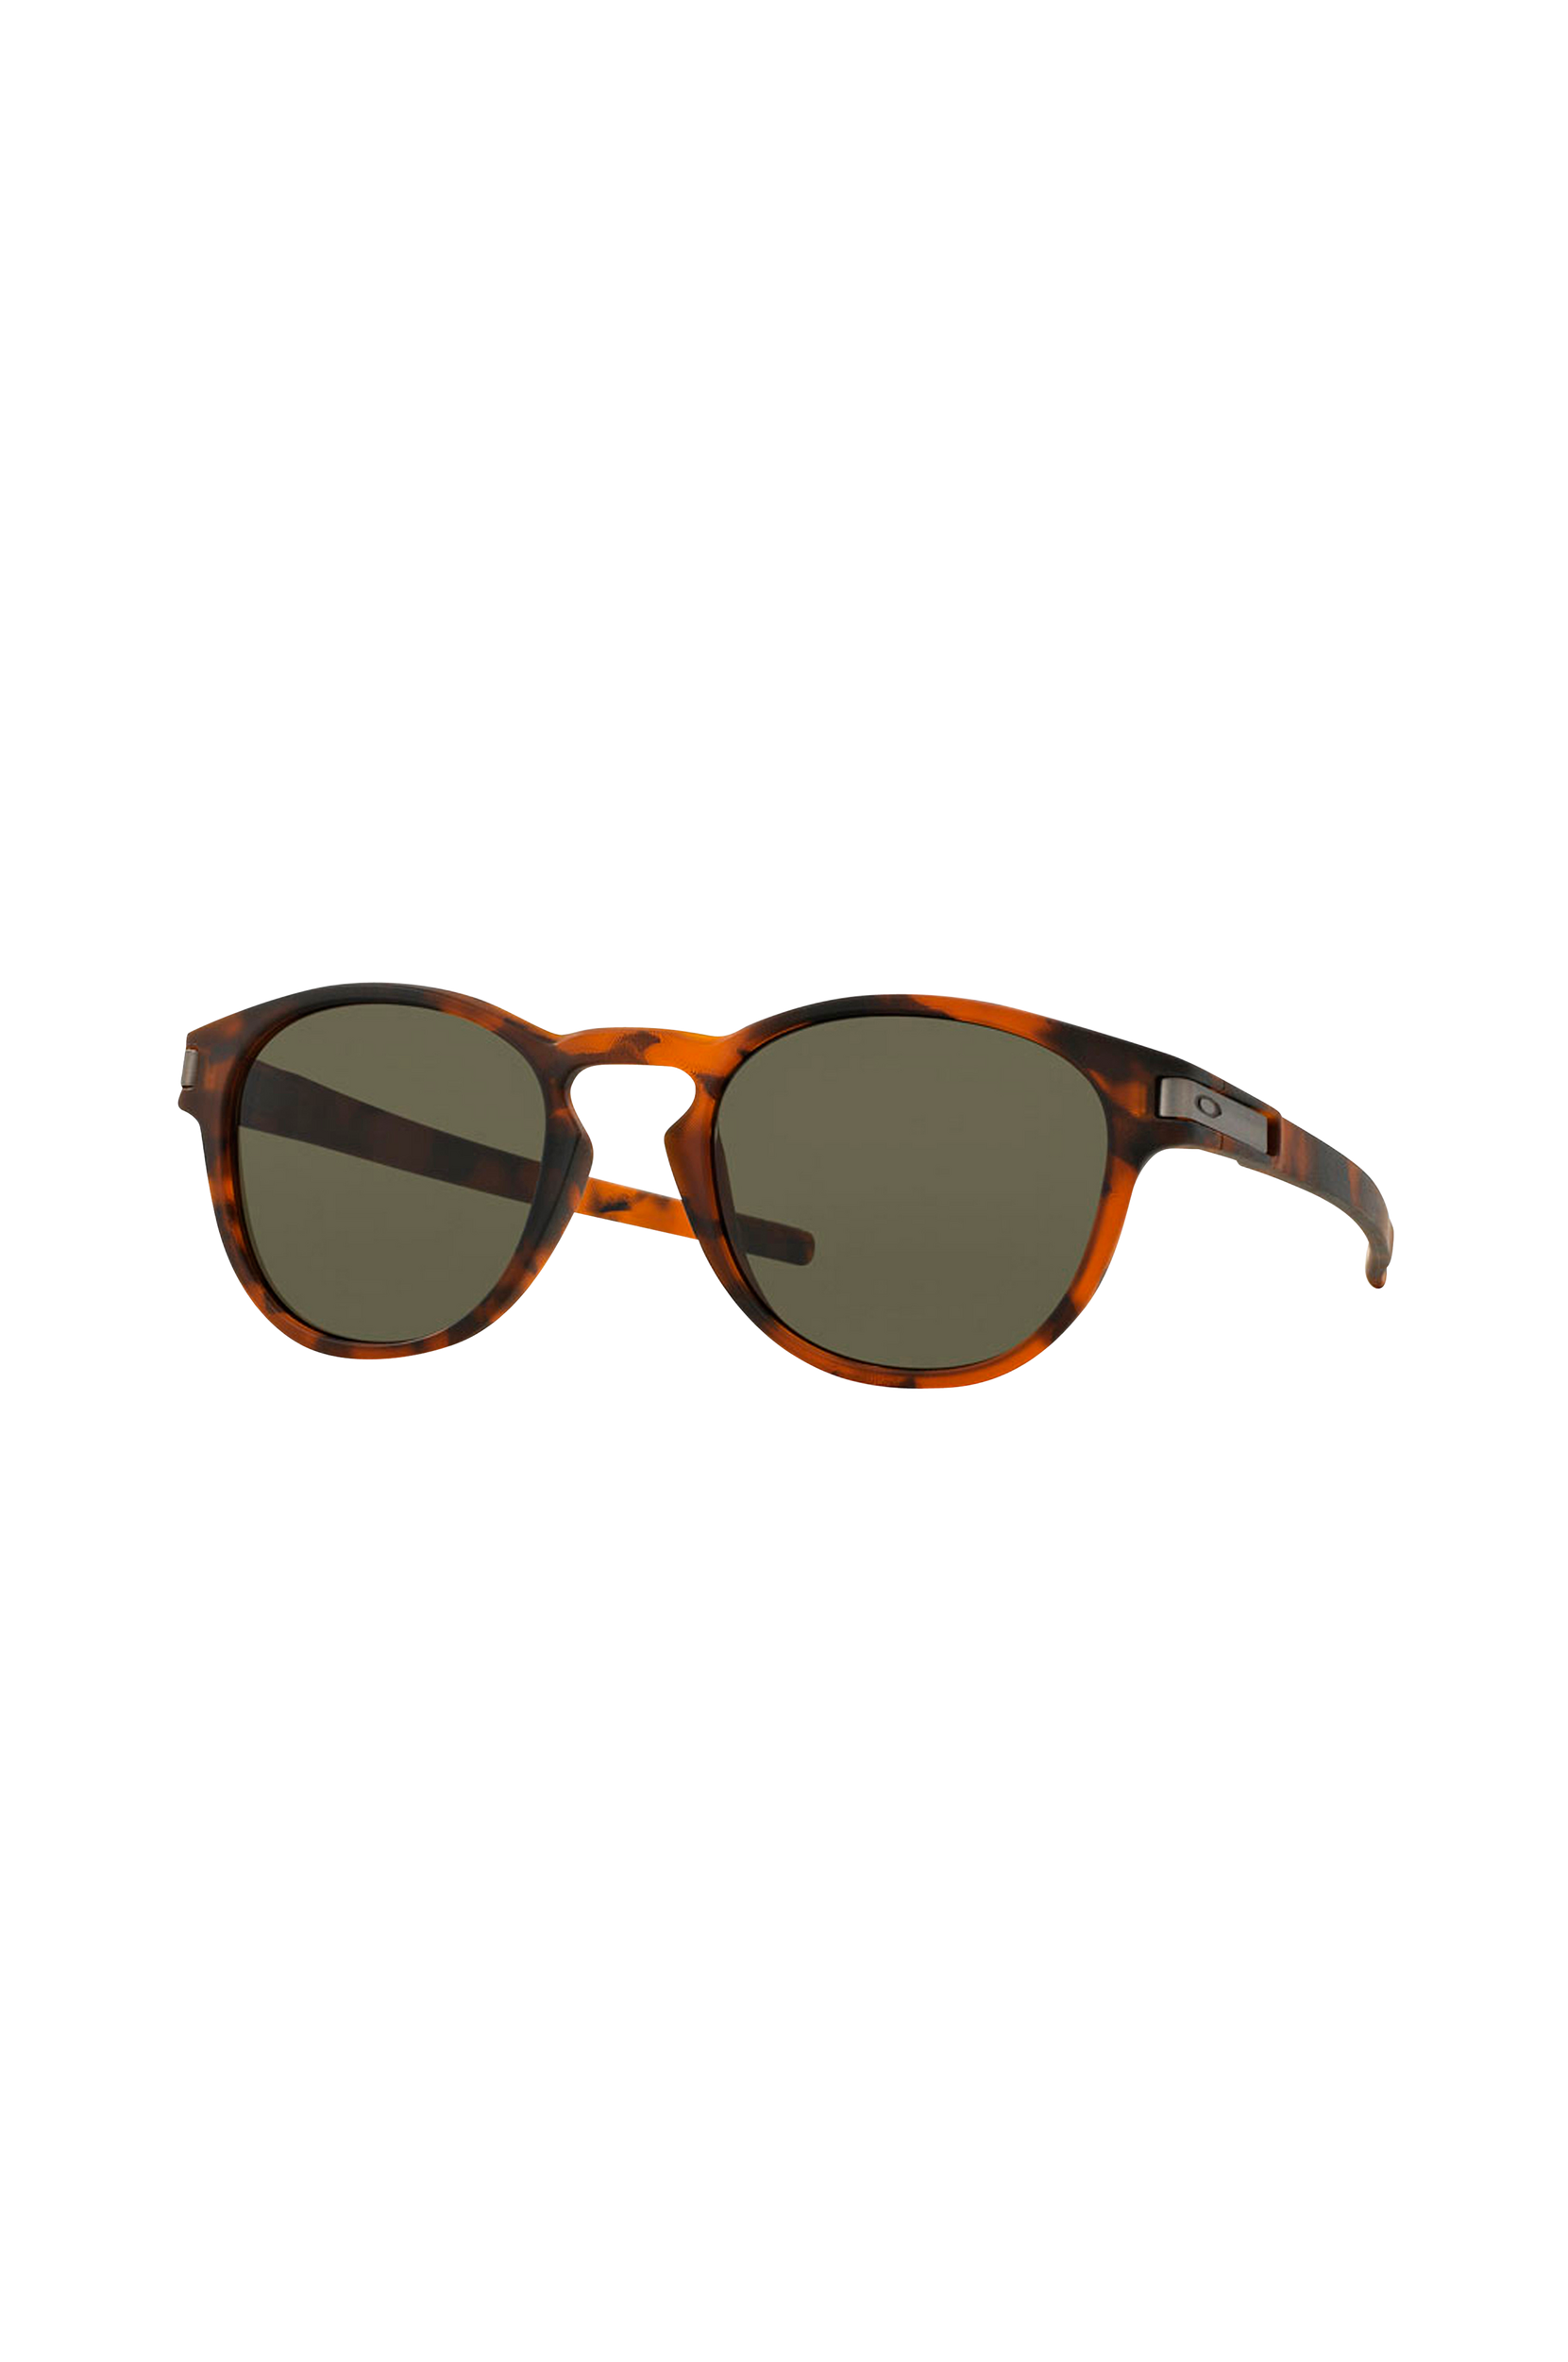 Solbriller Latch OO9265 Matte Brown/Tortoise Oakley Accessories til Kvinder i